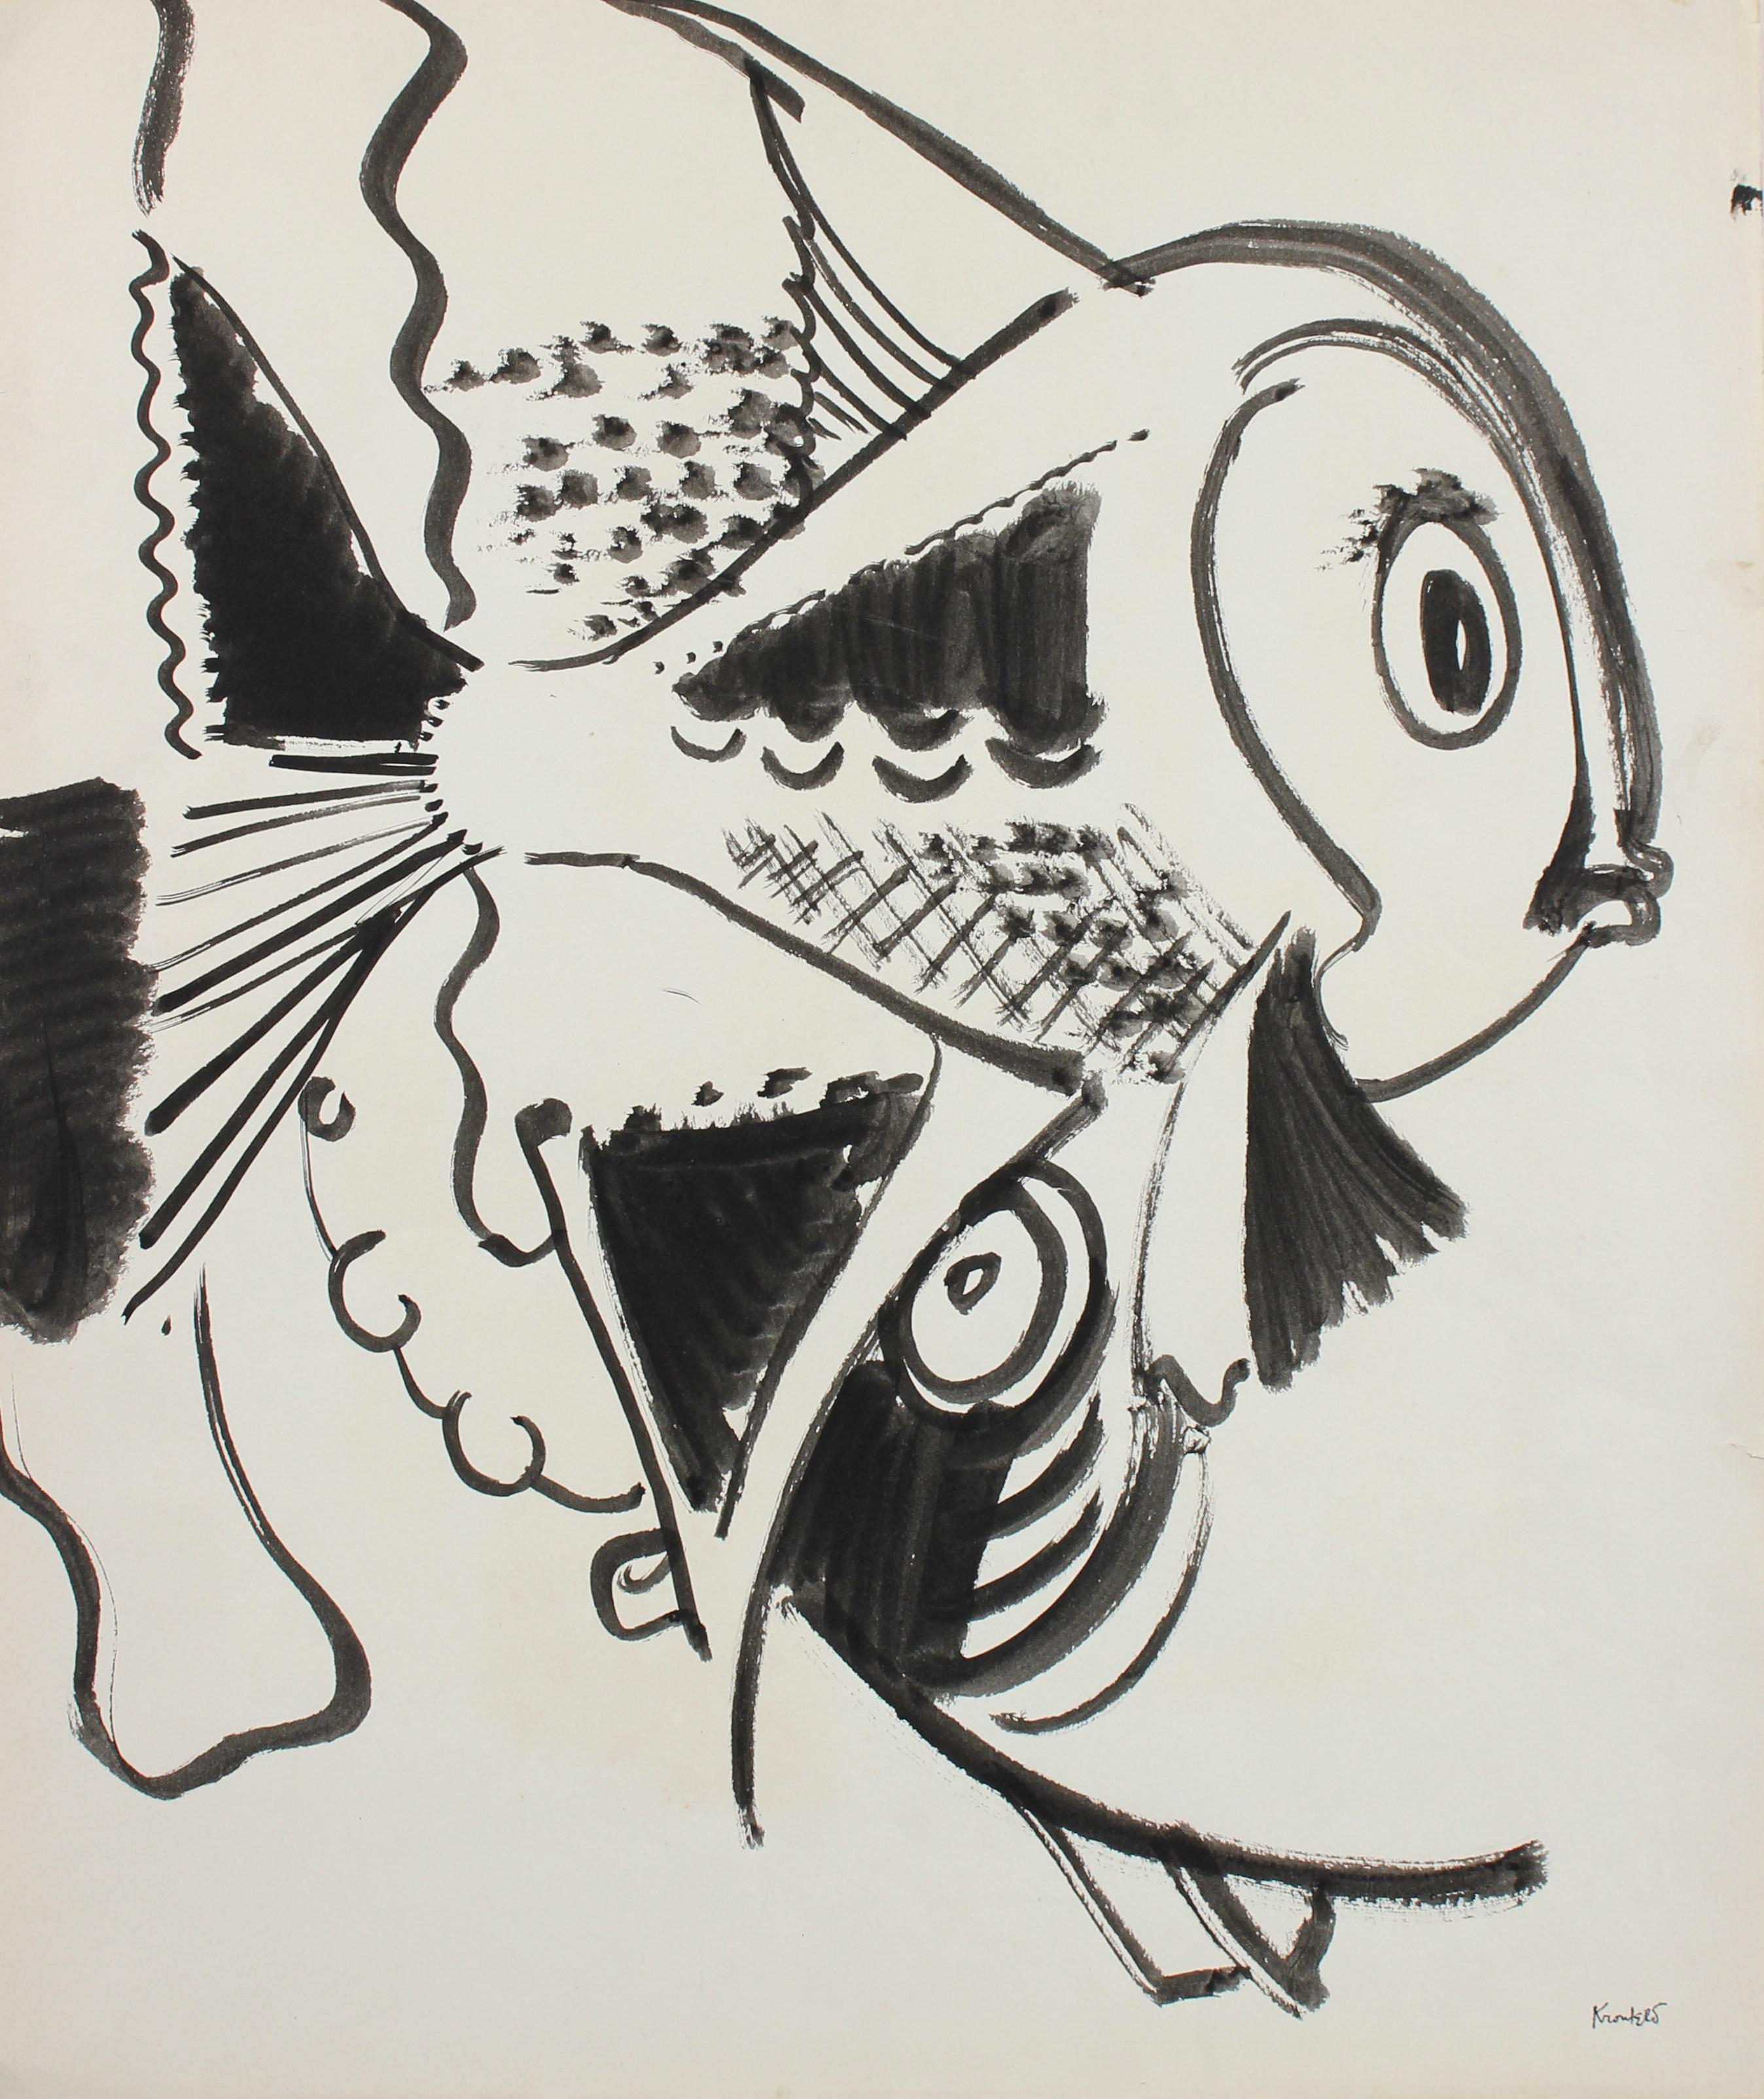 Playful Depiction of Fish 1960-80s Ink